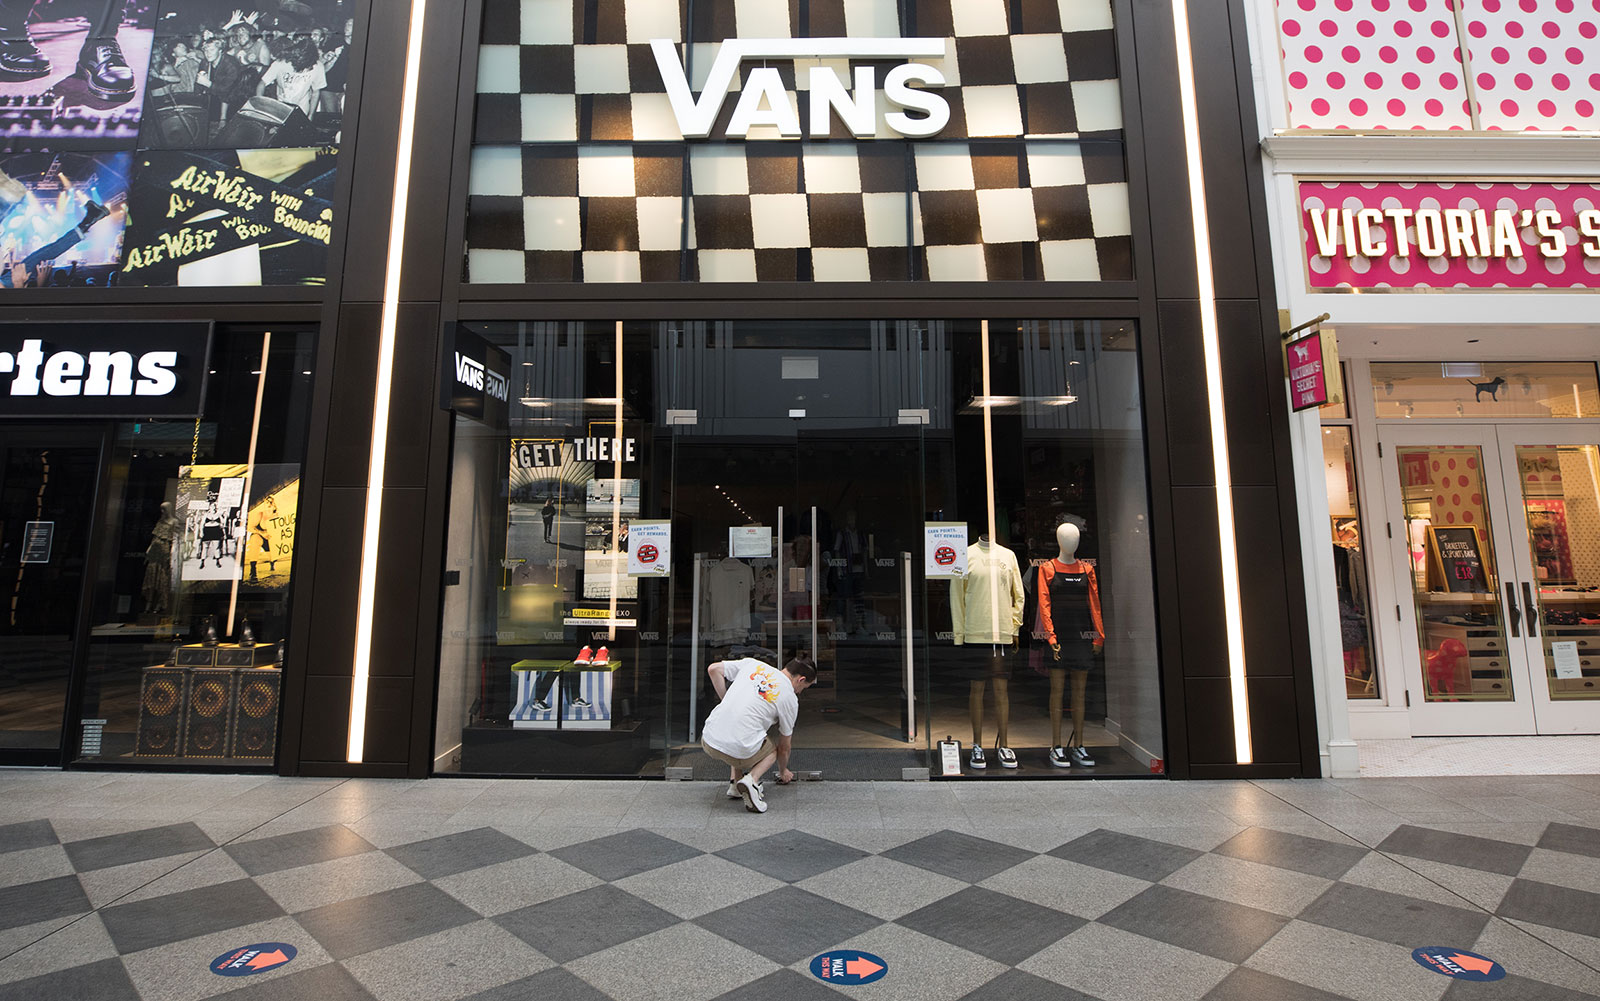 An employee locks a Vans Inc footwear store at the Westgate shopping centre in Oxford on Wednesday, May 27. Retail outlets can reopen starting June 15 as long as they comply with government coronavirus-secure guidelines.